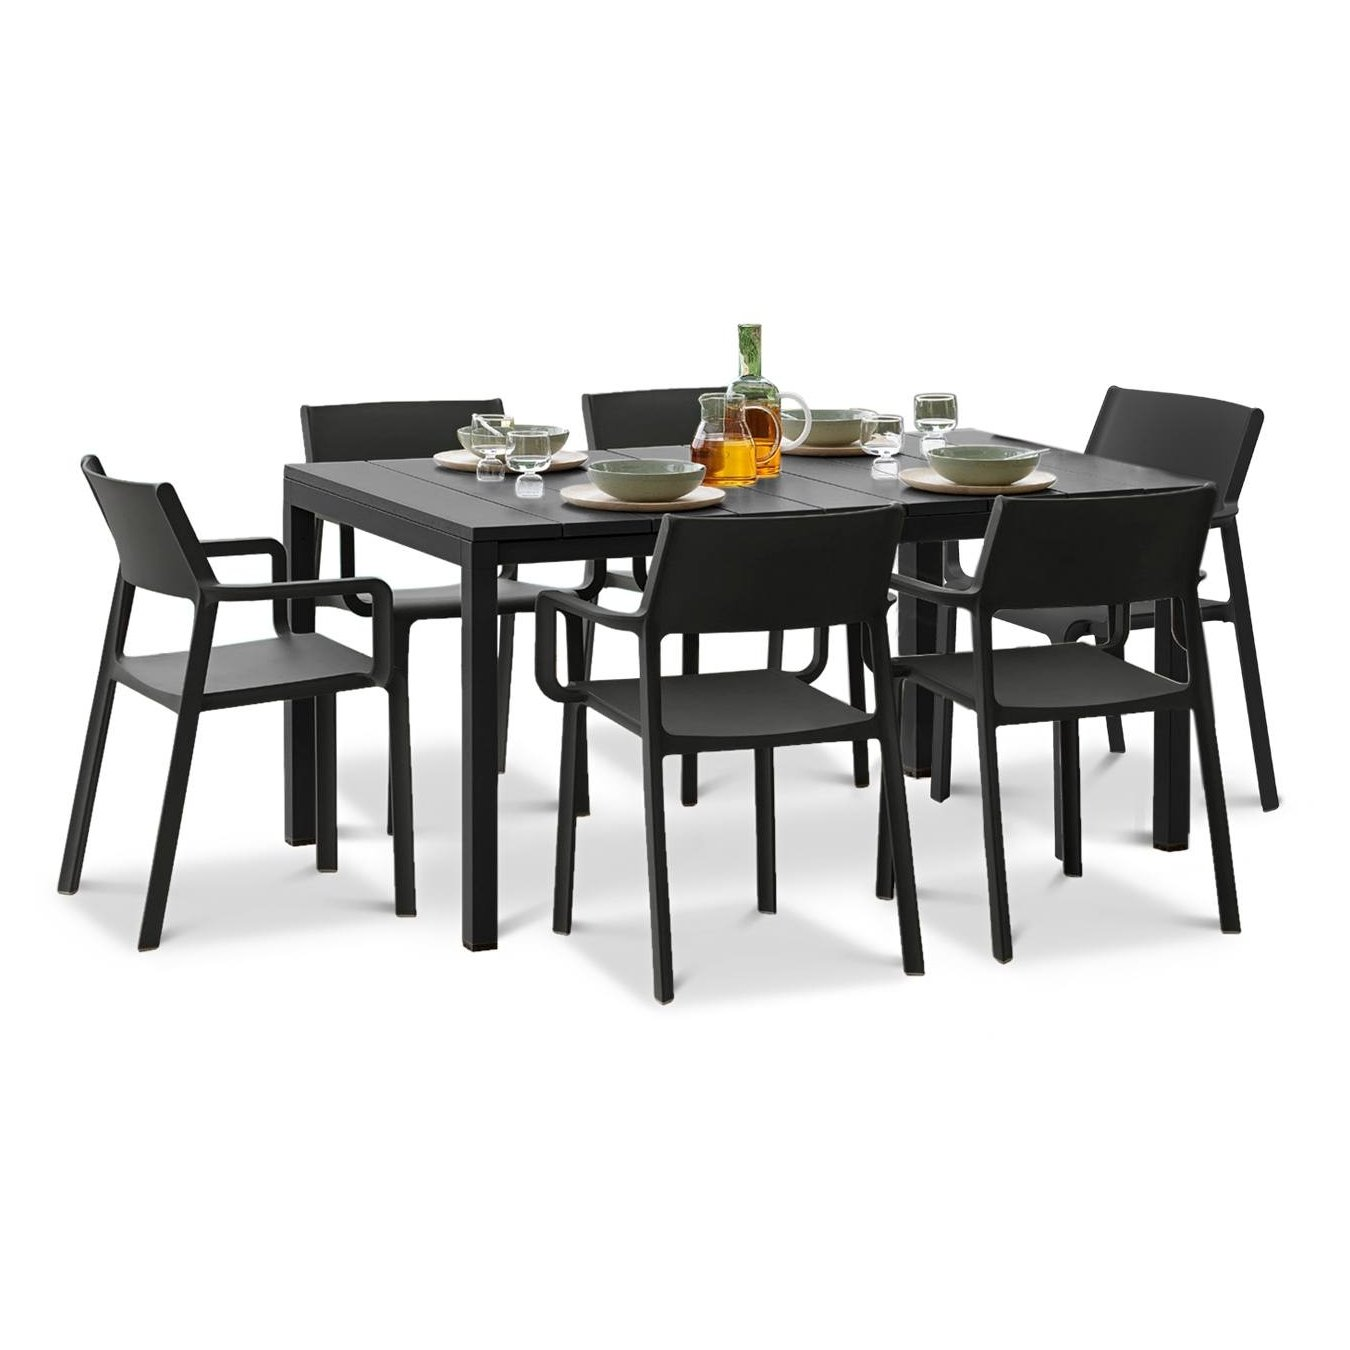 The Trill Rio 7 Piece Dining Set in Charcoal